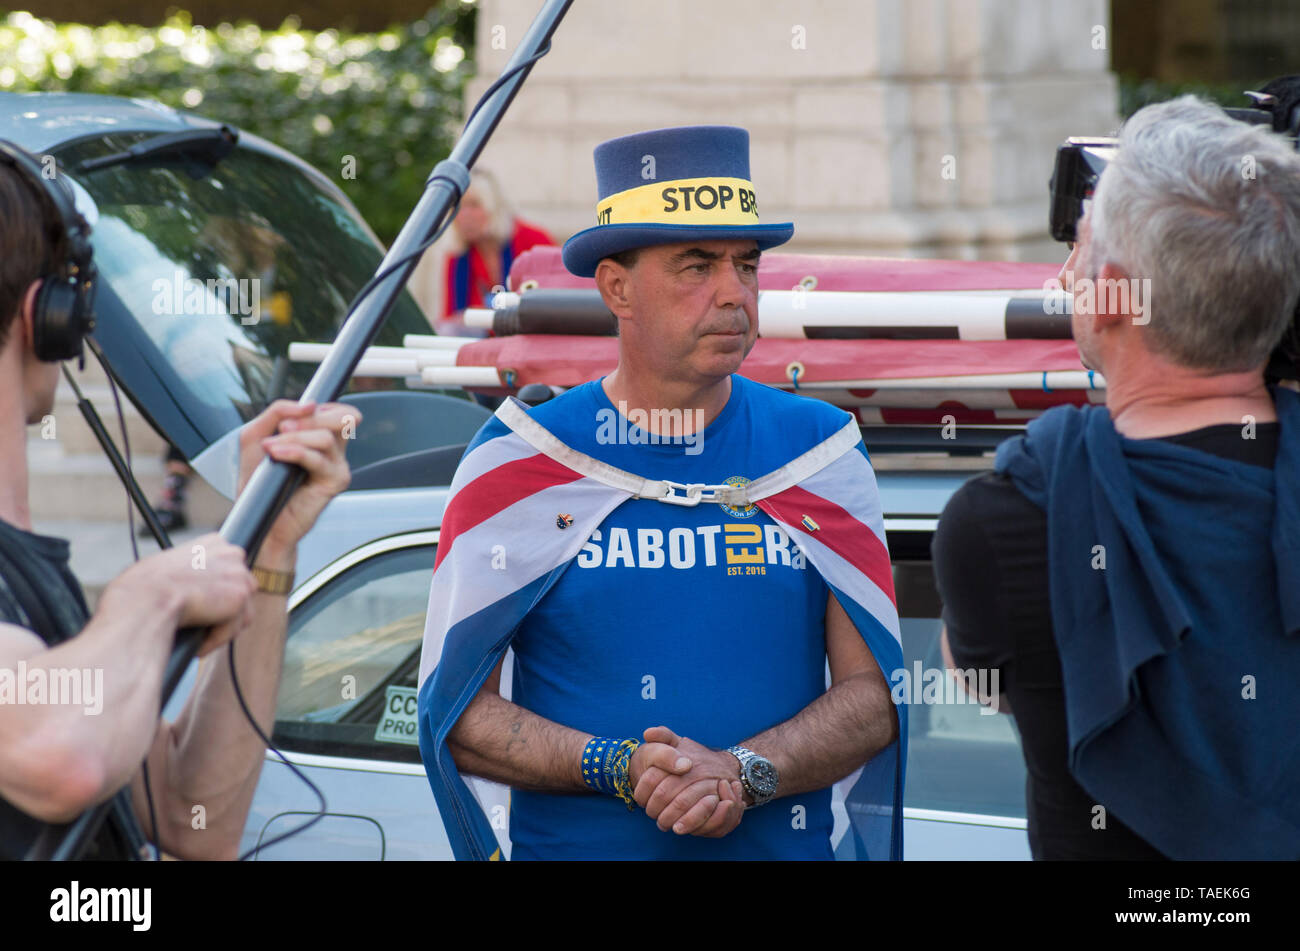 London, UK. 23 April 2019. Steve Bray, is interviewed by media near parliament on European election day in the UK, Westminster, London. Steve is an activist from Port Talbot in south Wales, who makes daily protests against Brexit in College Green, Westminster. He is known by some as Mr. Stop Brexit.  © Stuart Walden/ Alamy - Stock Image